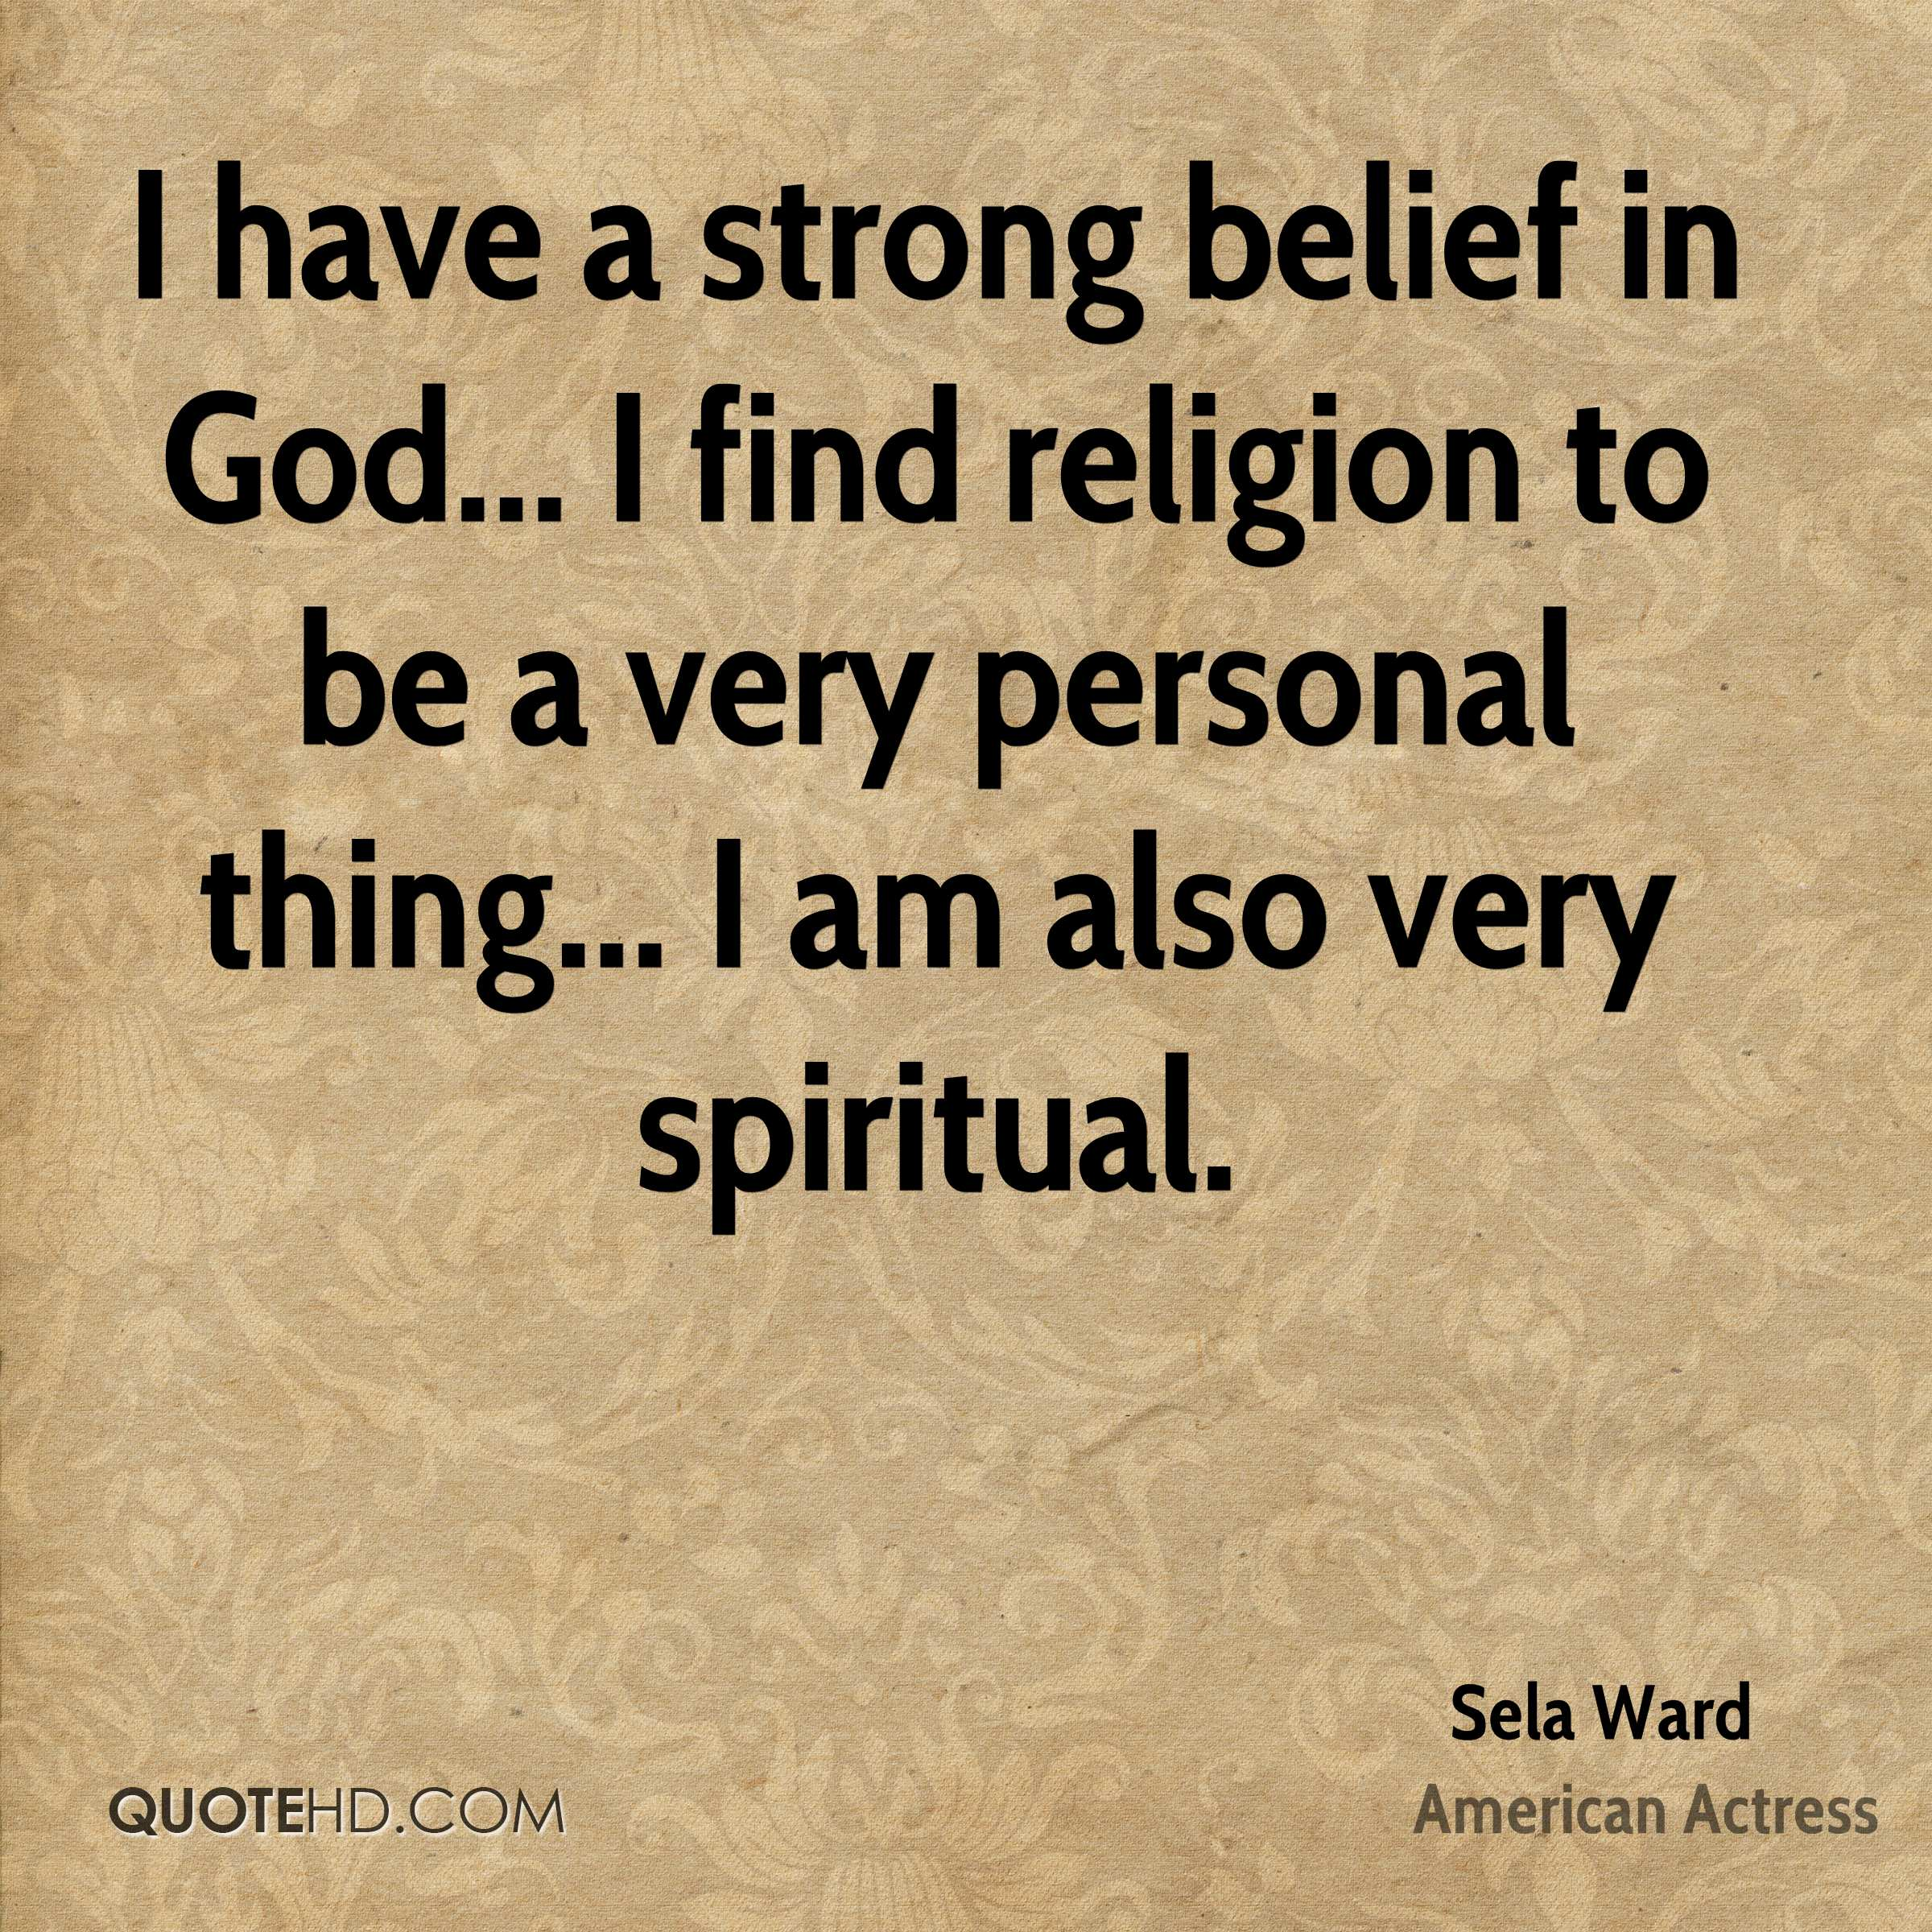 I have a strong belief in God... I find religion to be a very personal thing... I am also very spiritual.